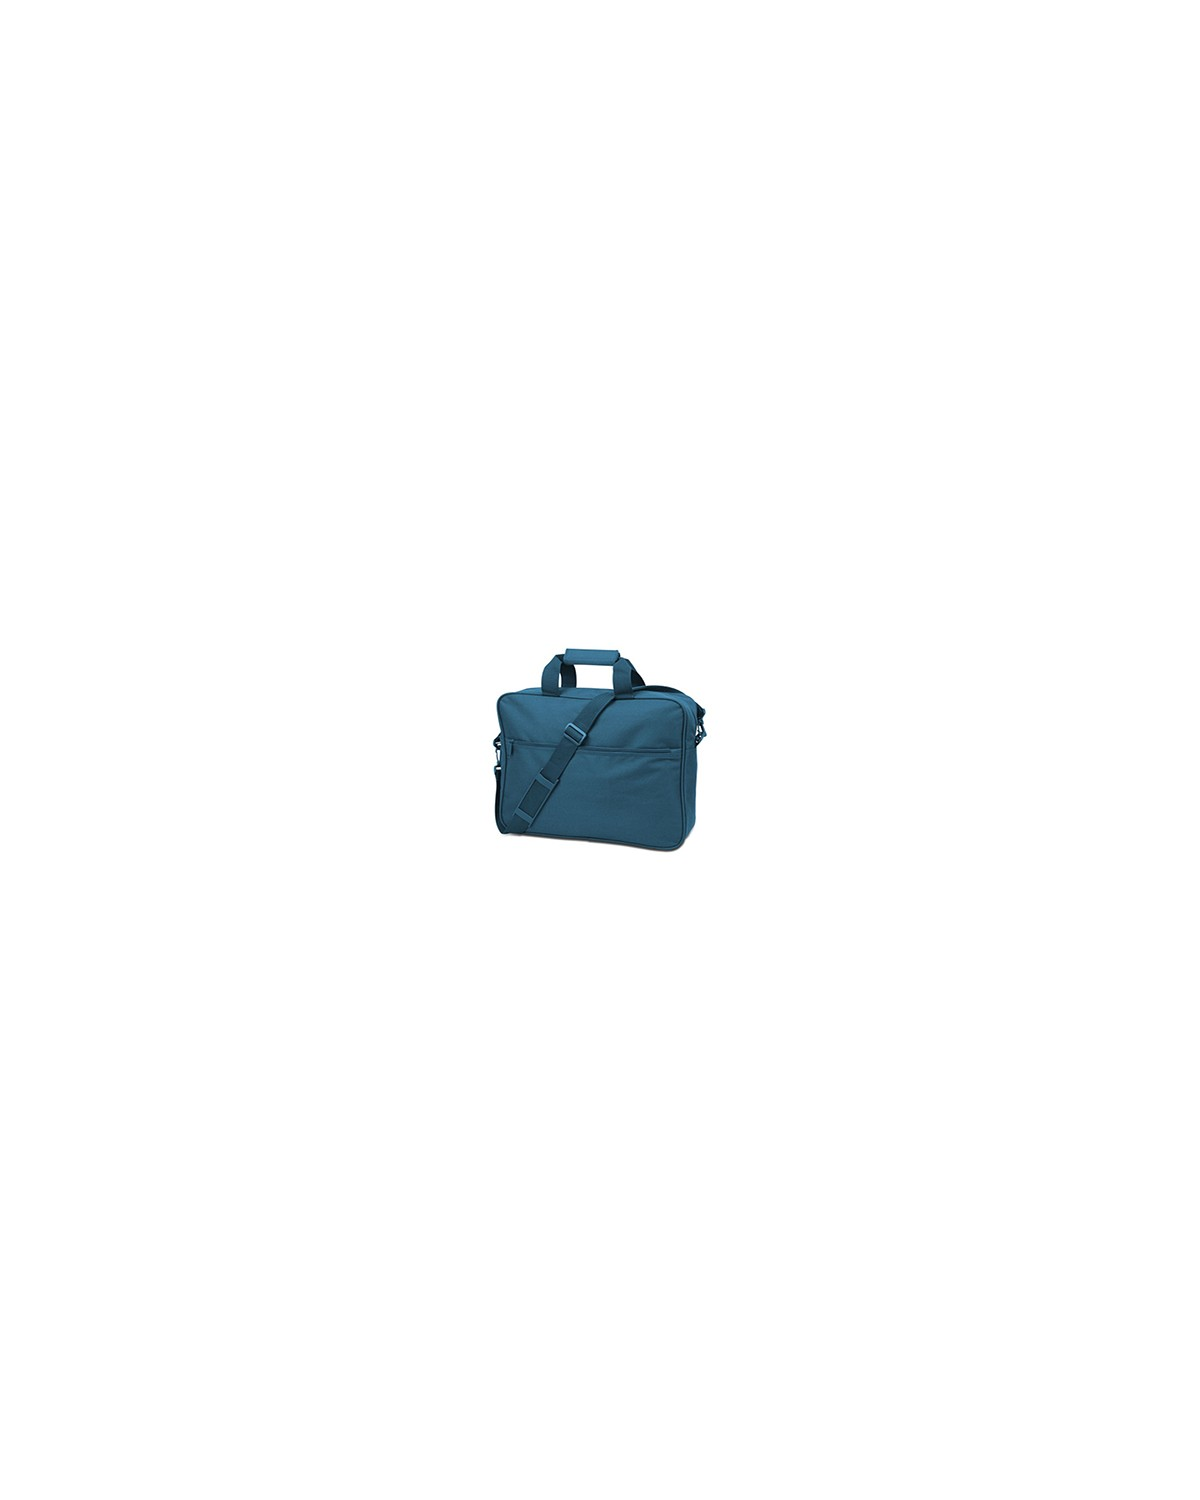 7703 Liberty Bags TURQUOISE